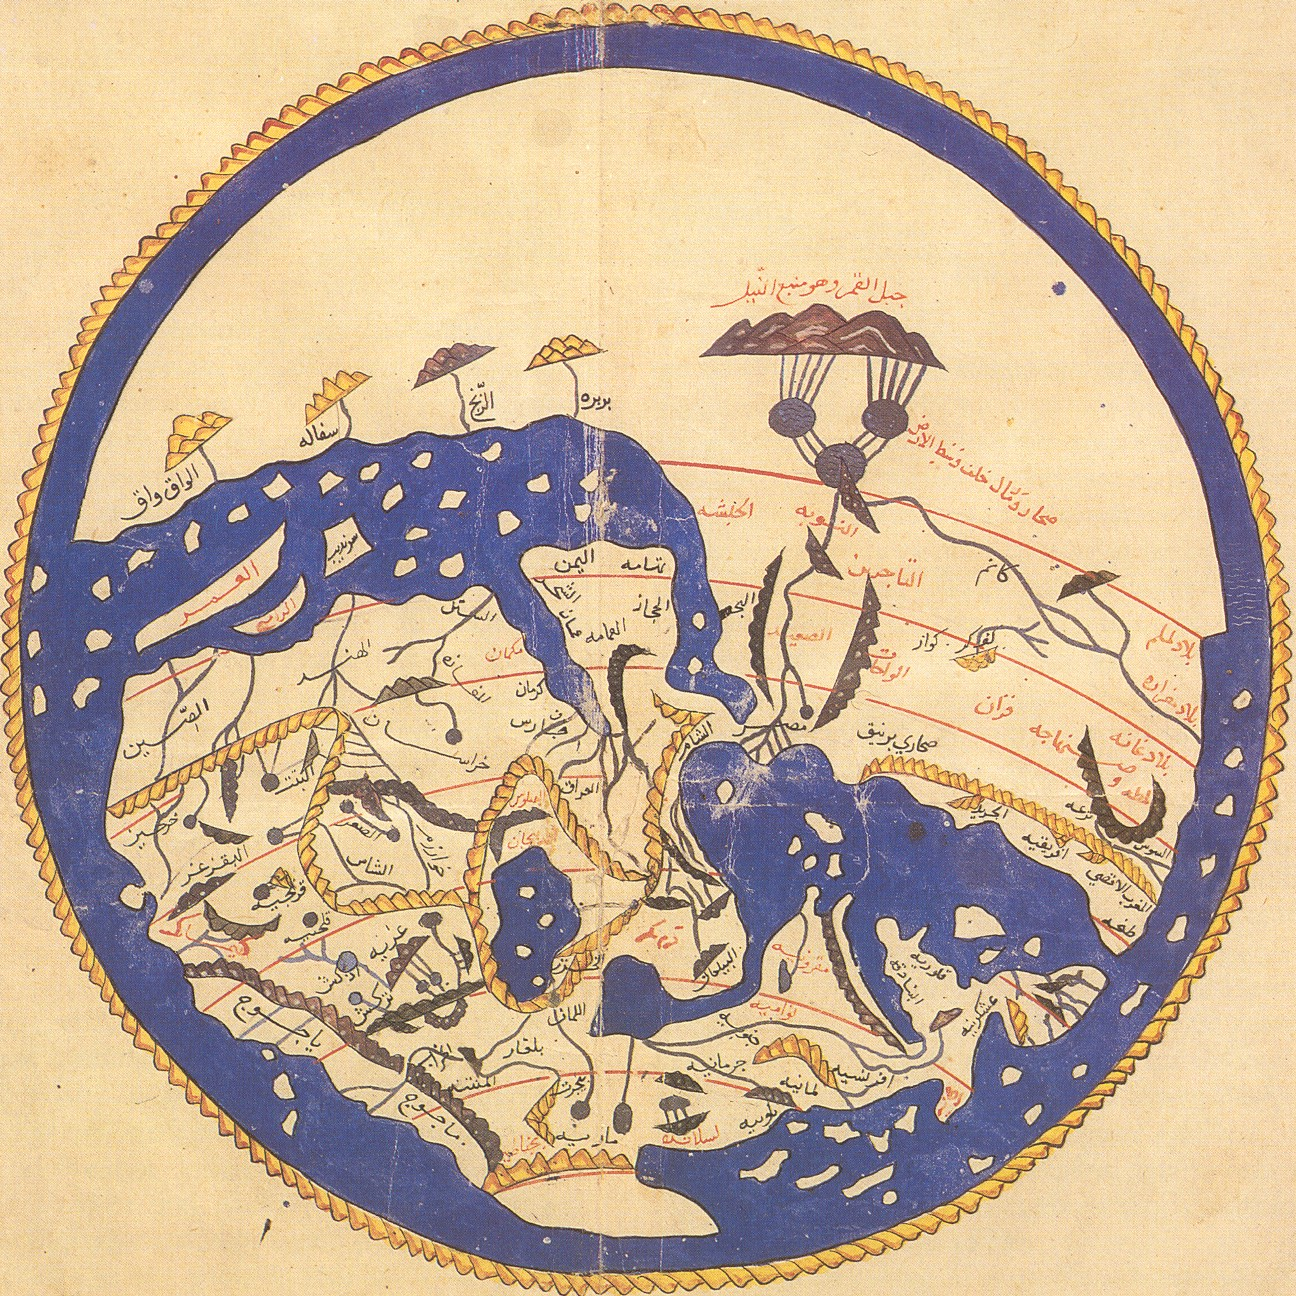 File:1154 world map by Moroccan cartographer al-Idrisi for king Roger of  Sicily